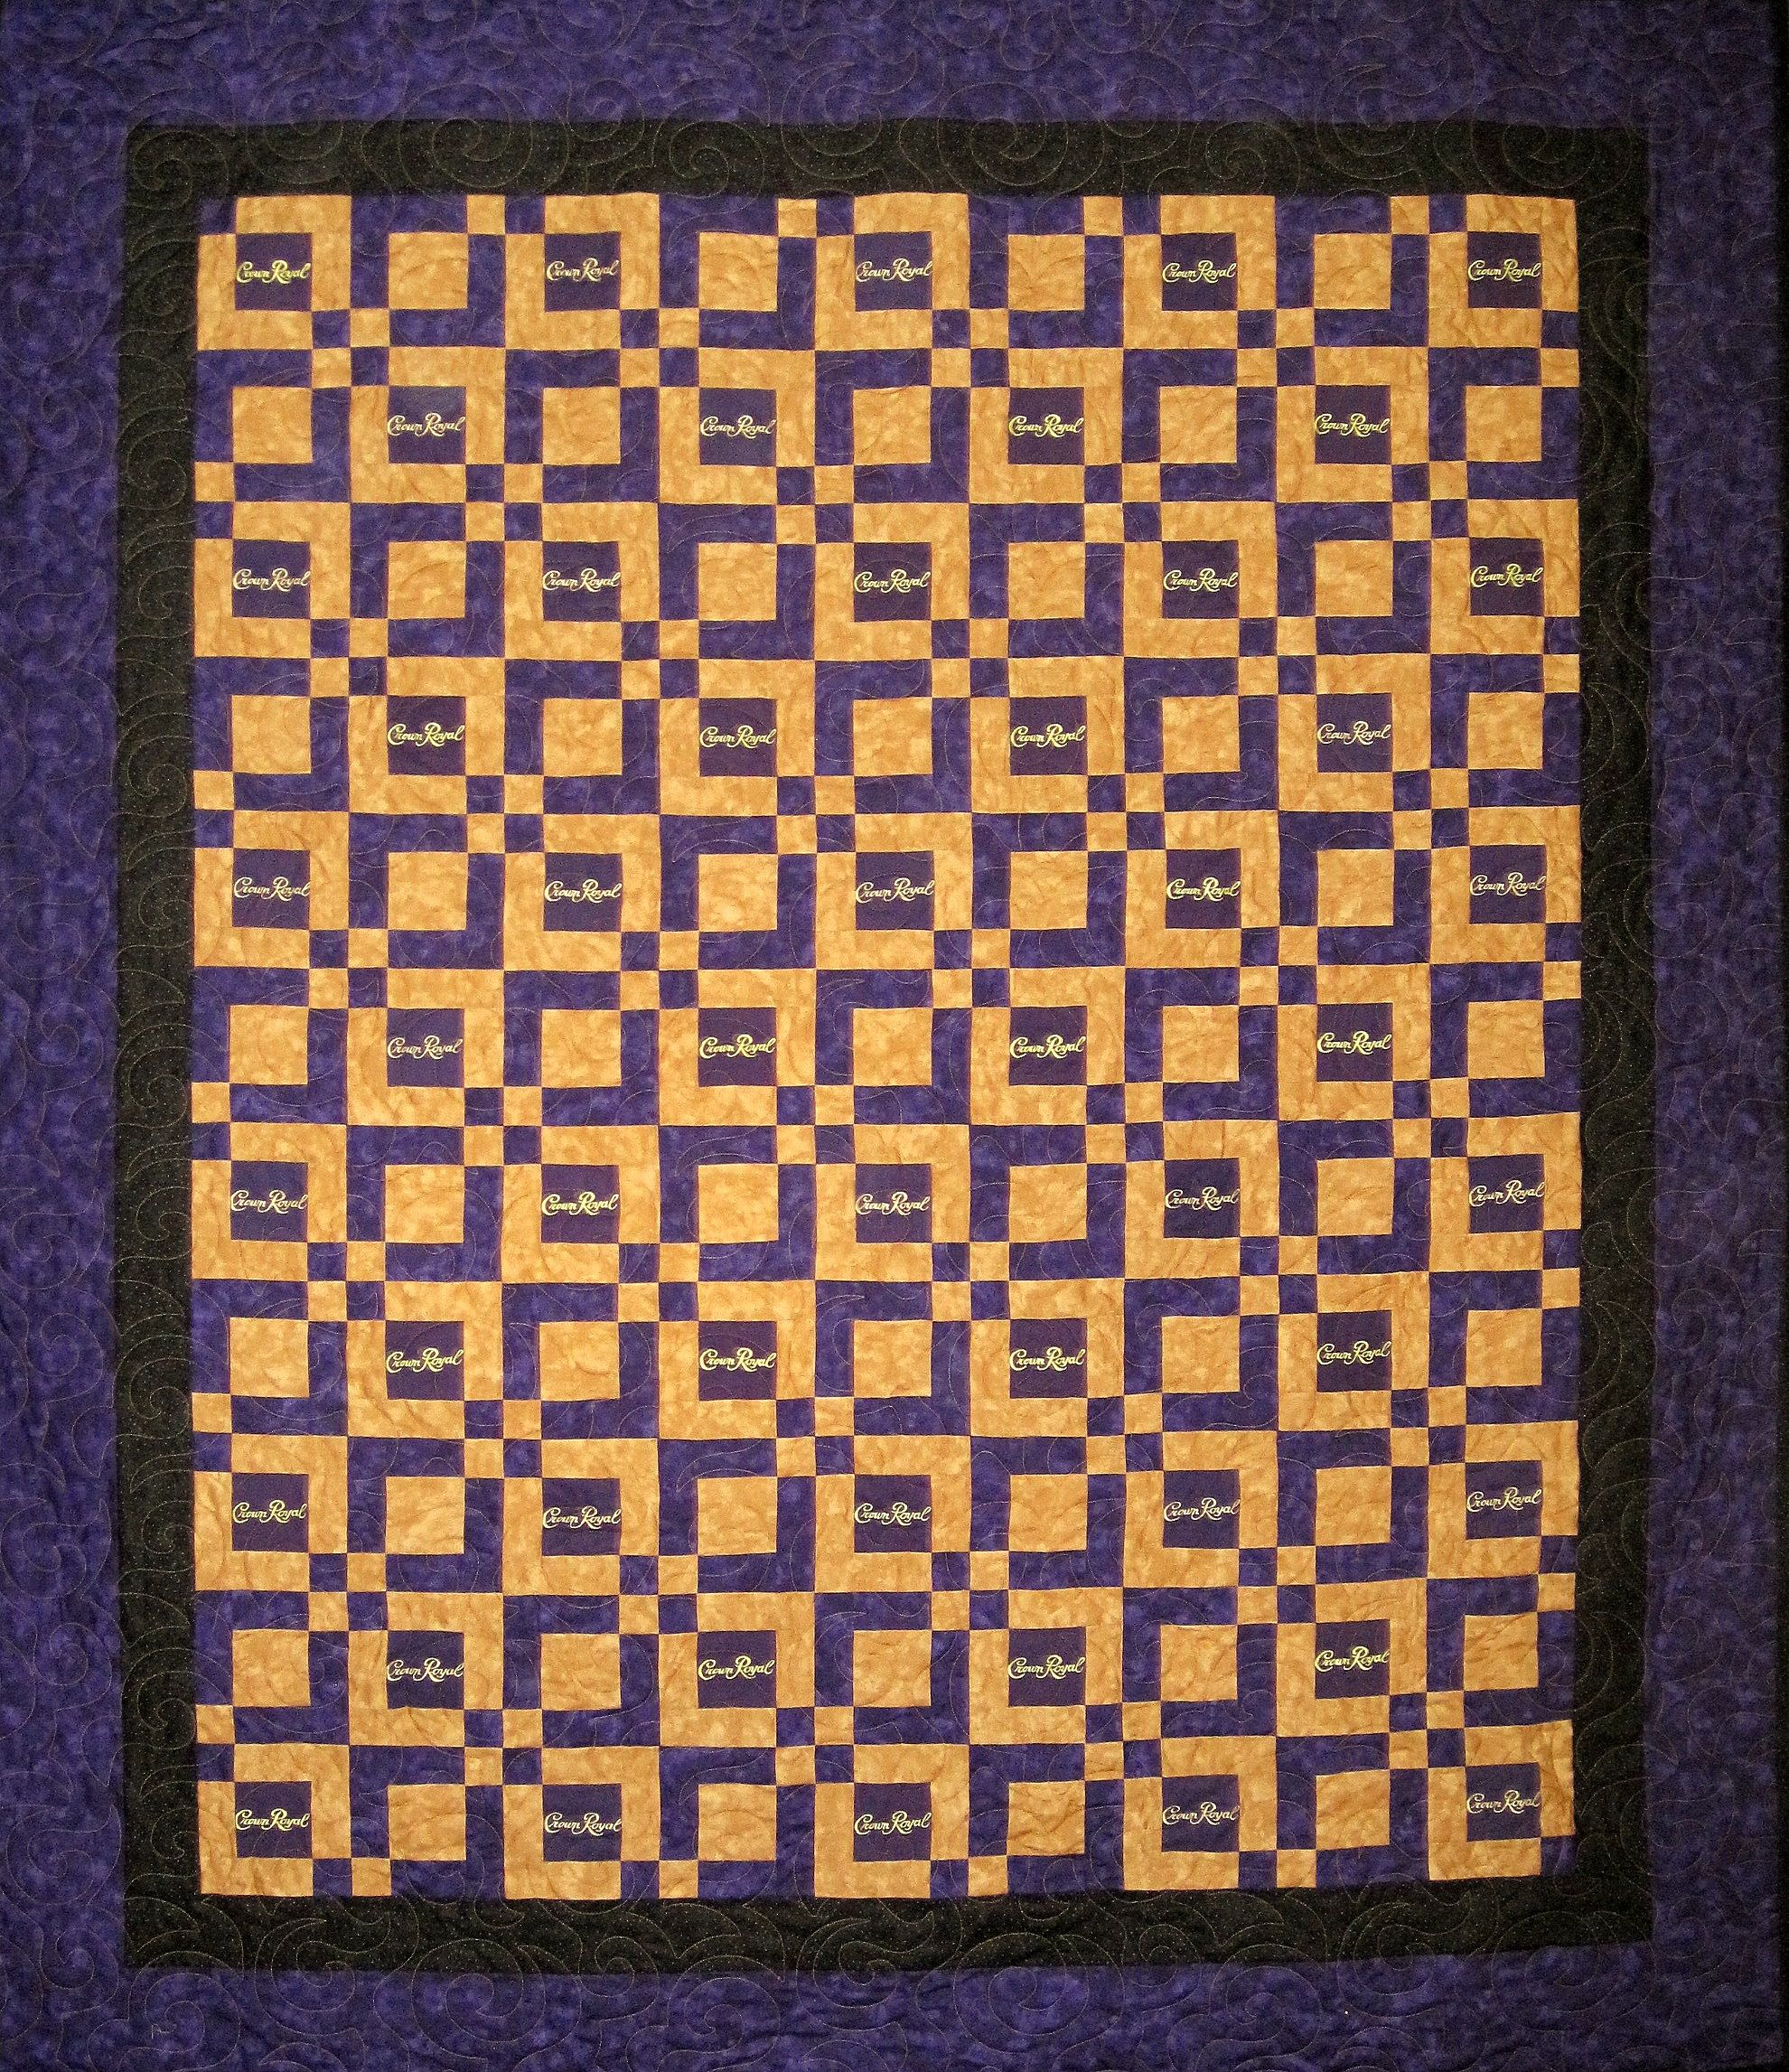 quilt made out of crown royal bags | Crown Royal Quilts | Quilts ... : crown royal quilt patterns free - Adamdwight.com